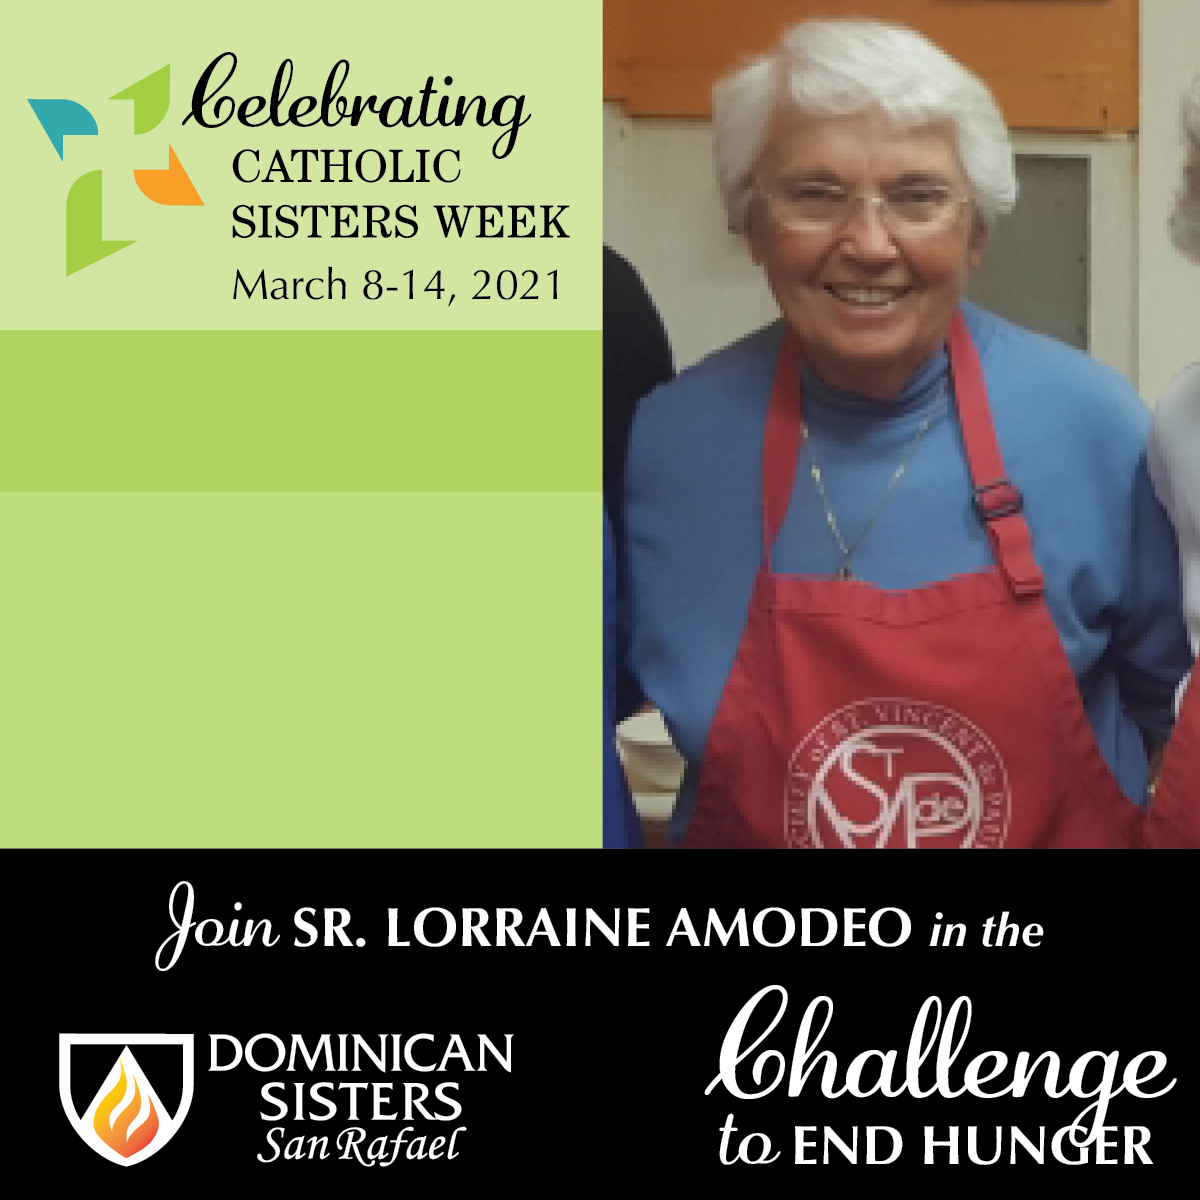 Challenge to End Hunger—Sr. Lorraine Amodeo, OP